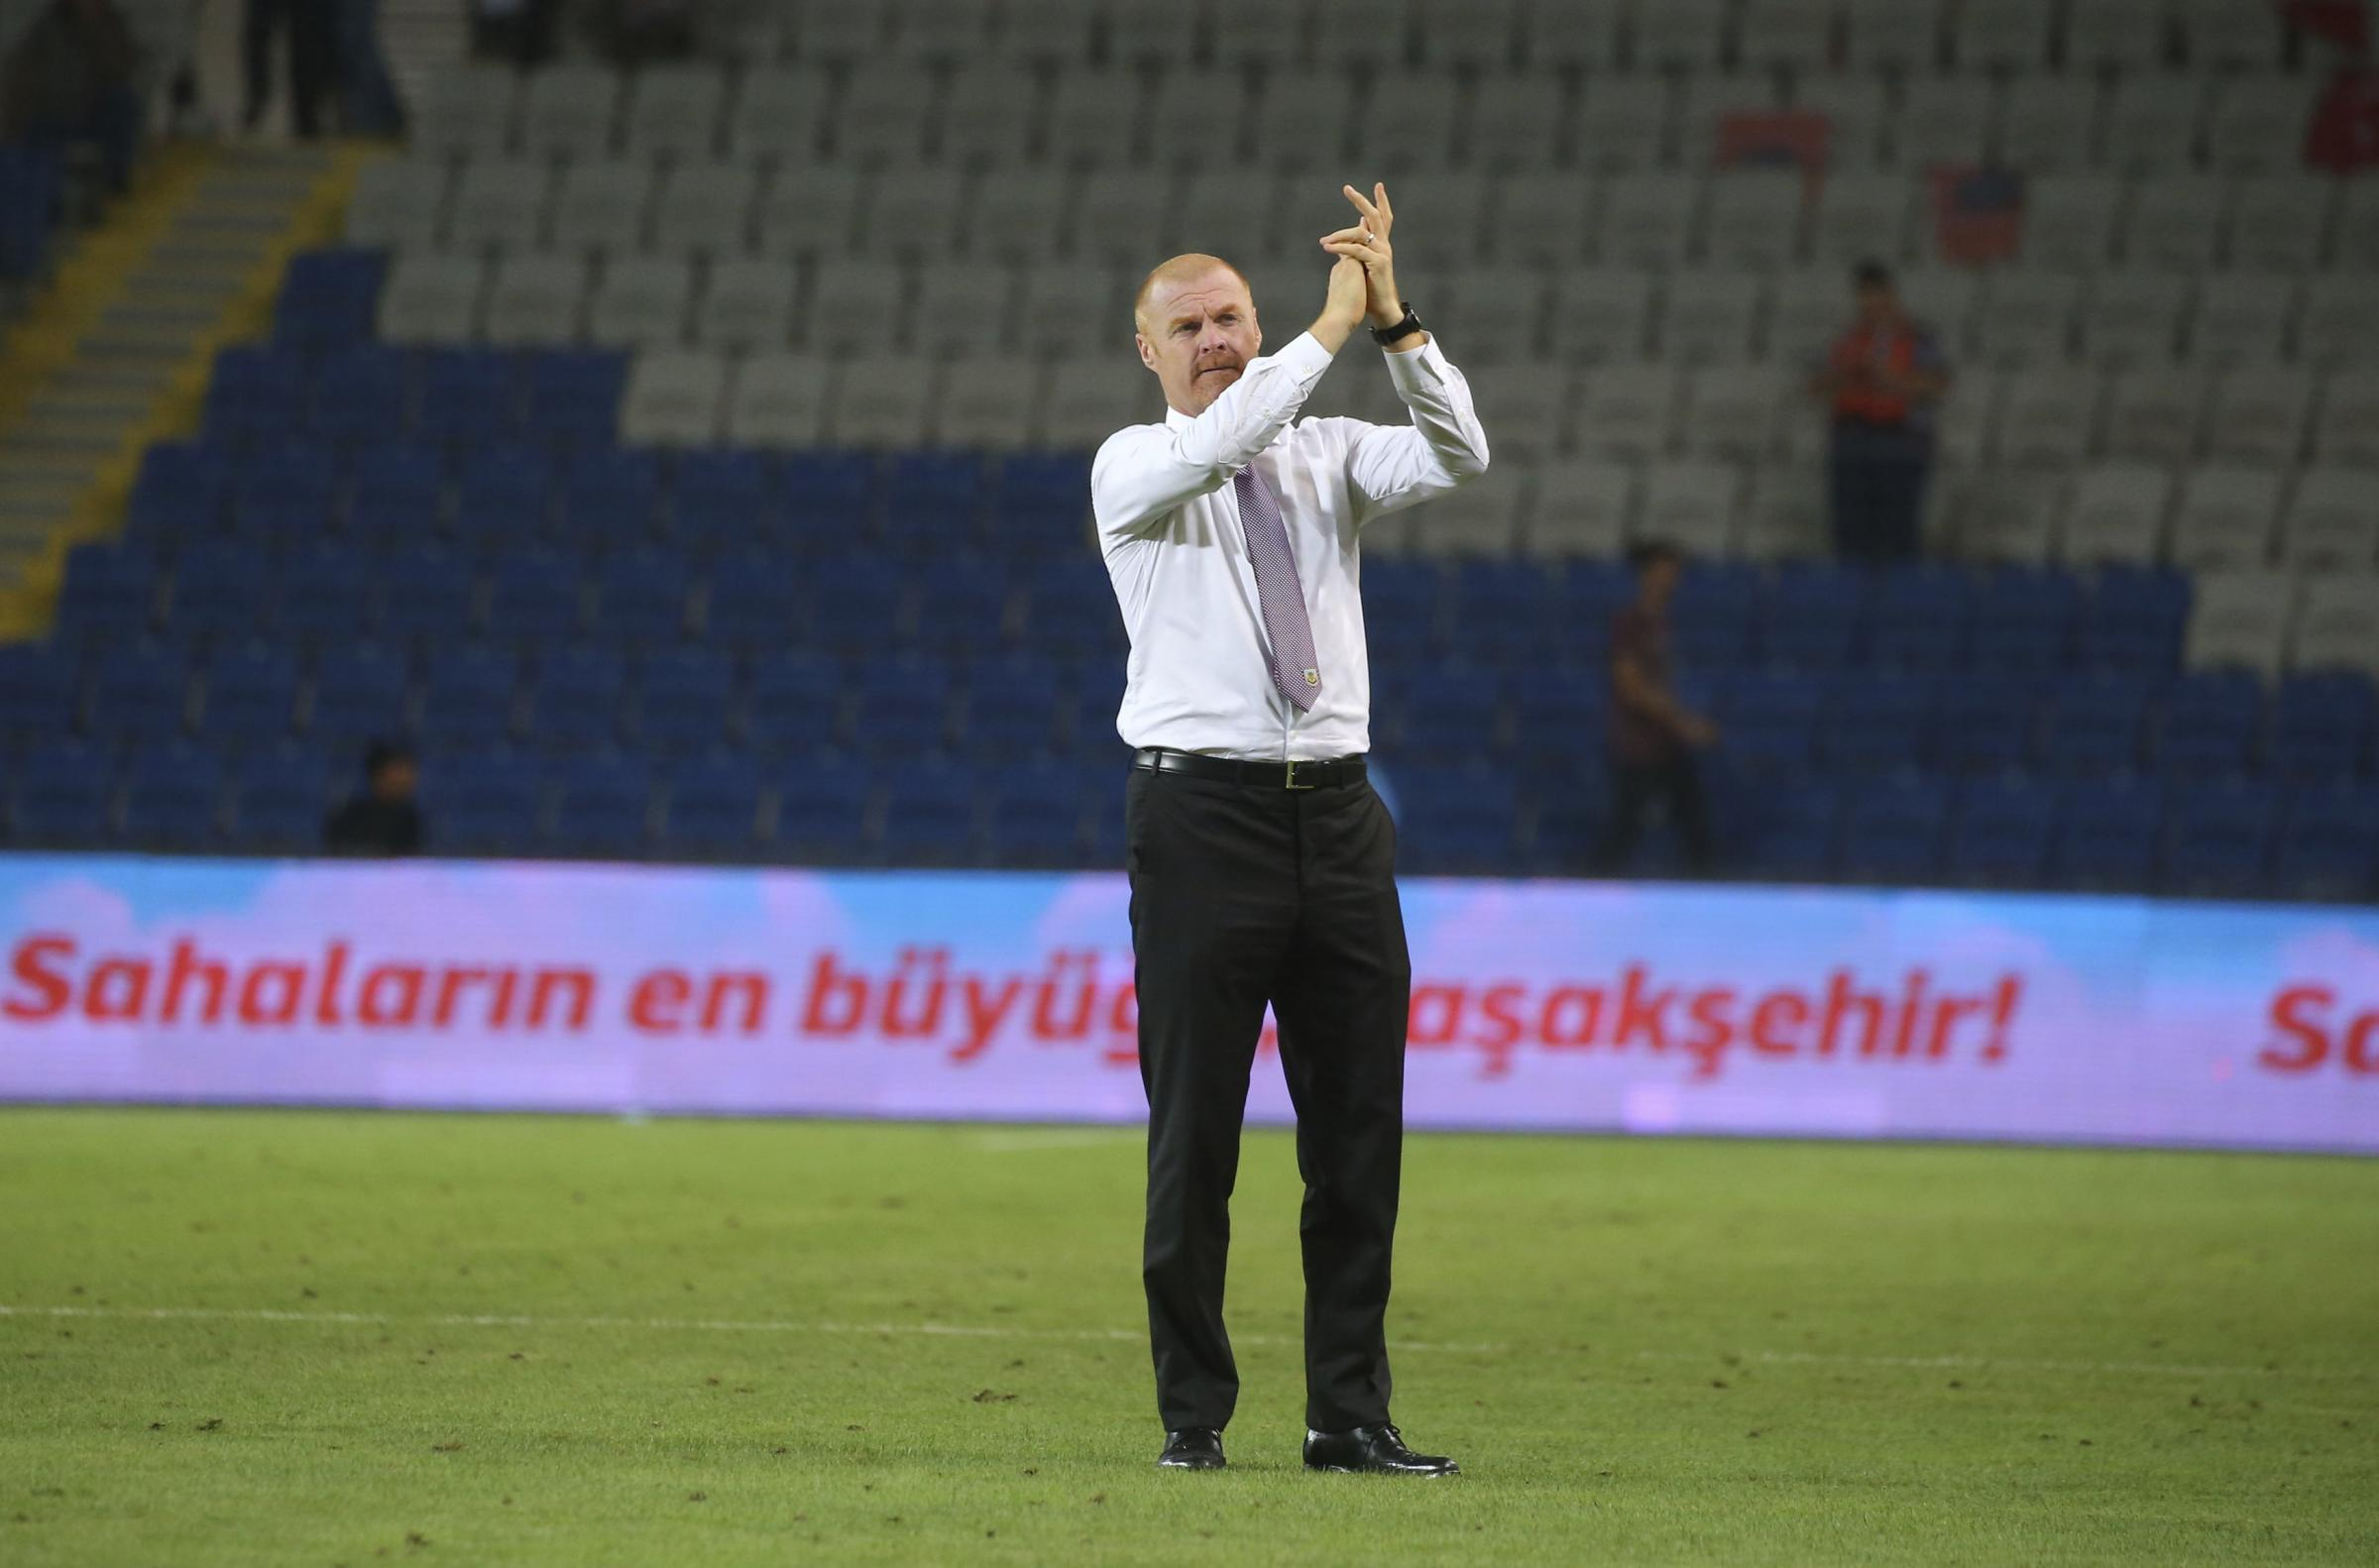 Burnley's head coach Sean Dyche, applauds his team's fans following the Europa League qualification soccer match between Istanbul Basaksehir and Burnley, at the Fatih Terim stadium in Istanbul, Thursday, Aug. 9, 2018. The match ended 0-0 draw. (AP